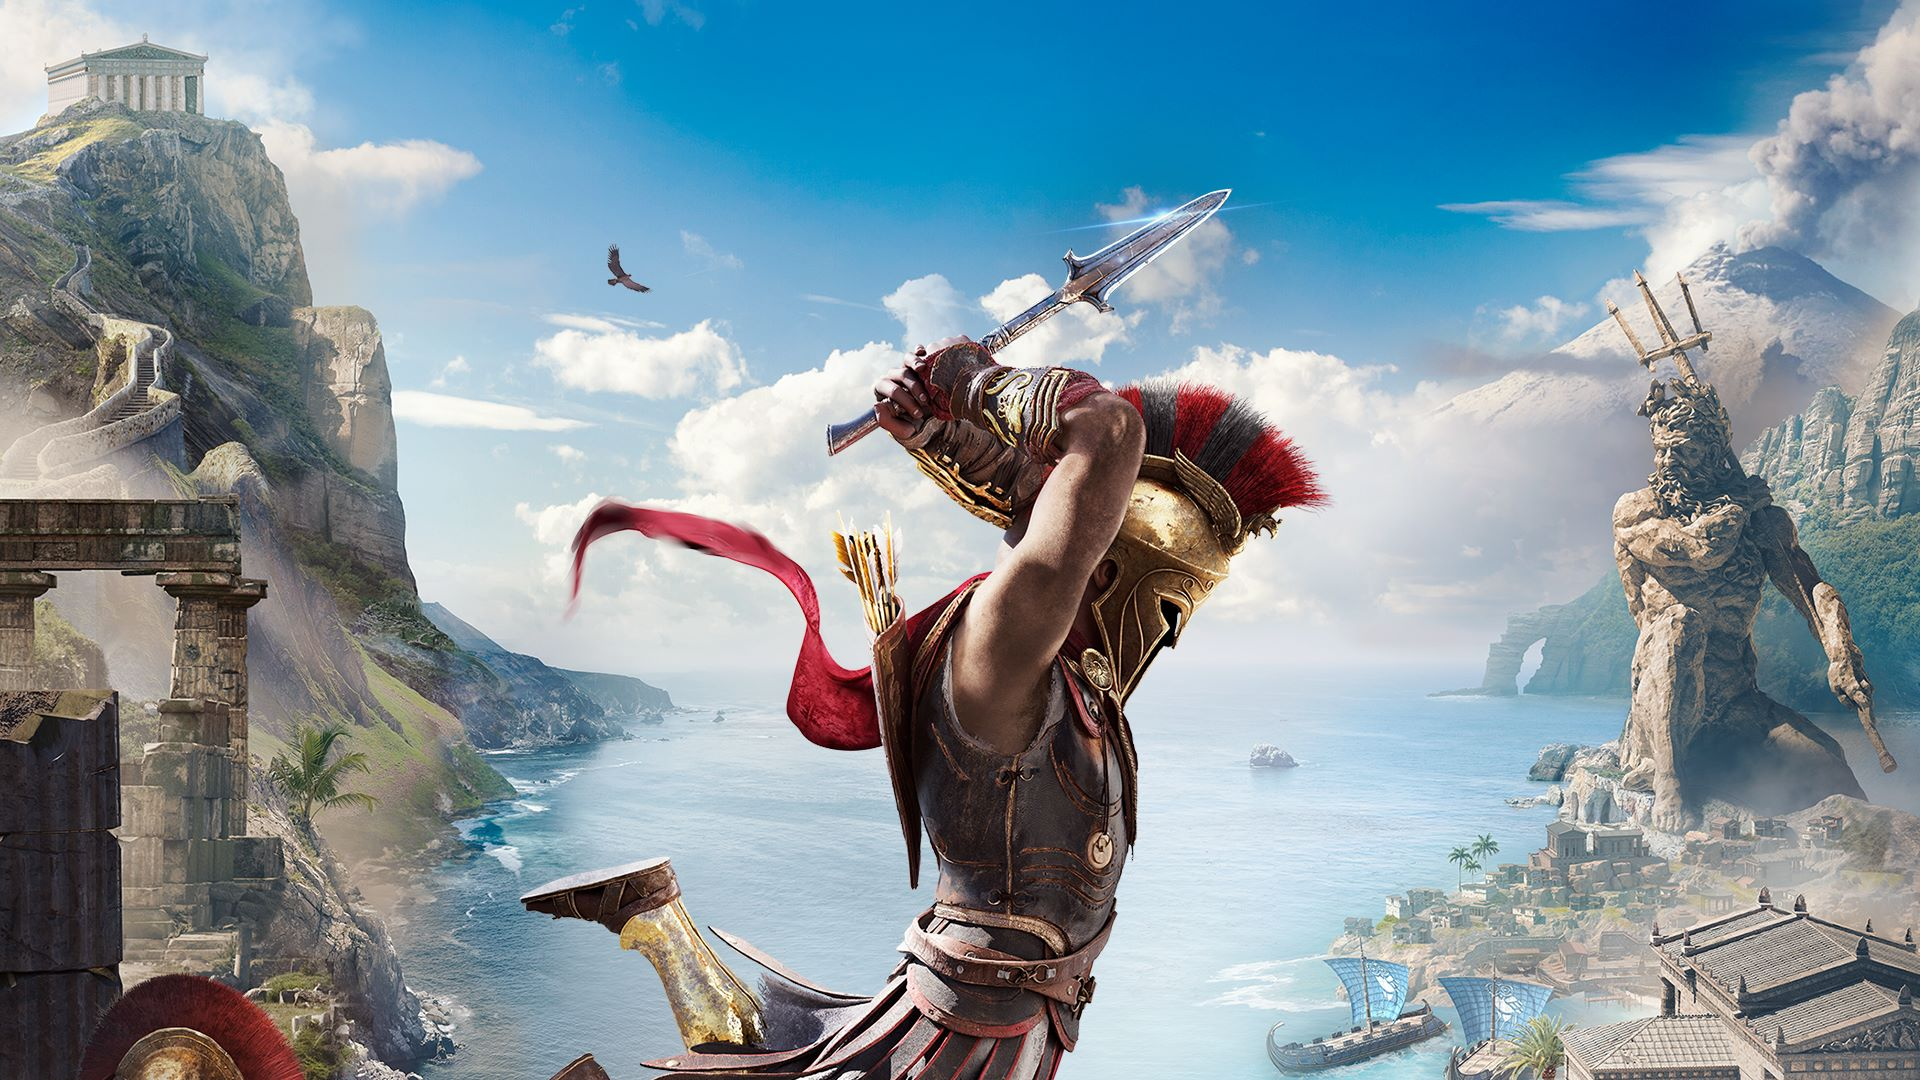 64456435ef1 UBISOFT ANNOUNCES CREATION OF ASSASSIN S CREED ORIGINS LIMITED EDITION  YEEZYS